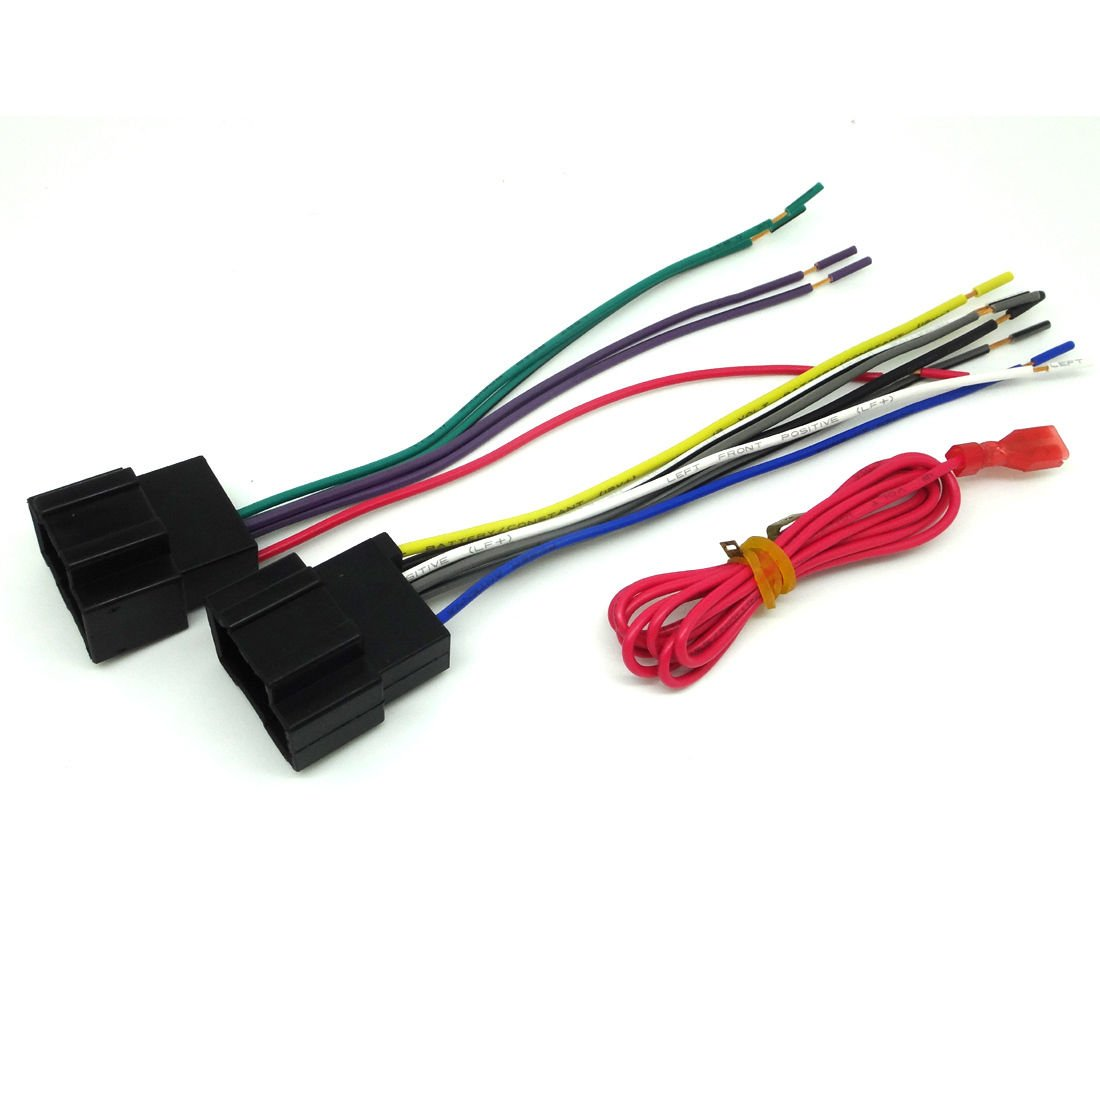 61nu0LRNVFL._SL1100_ amazon com gm car stereo cd player wiring harness wire 2007 gmc sierra stereo wiring harness at alyssarenee.co